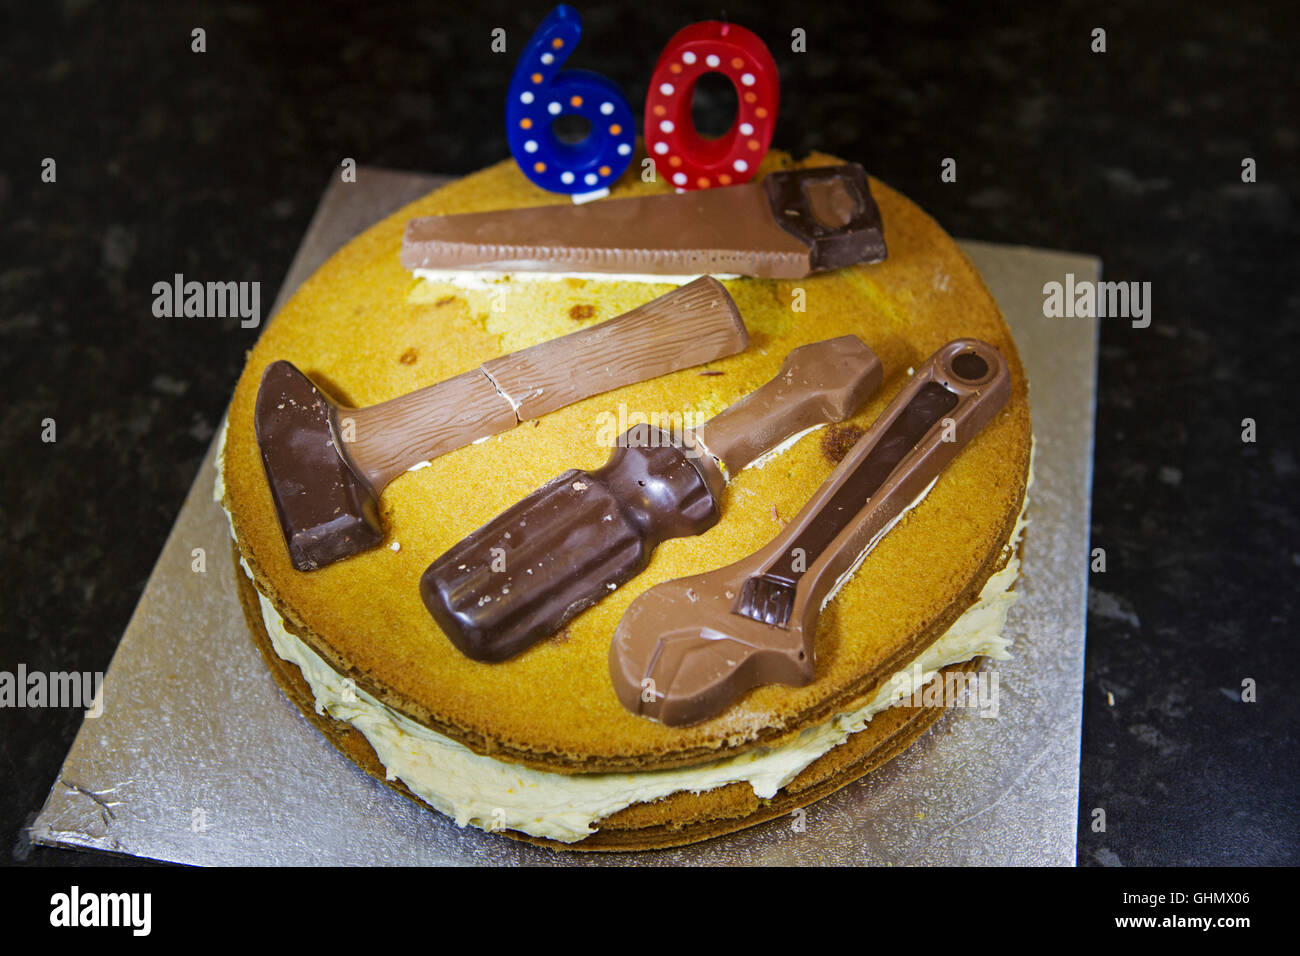 A Home Baked Birthday Cake For 60 Year Old The Features Chocolate Tools